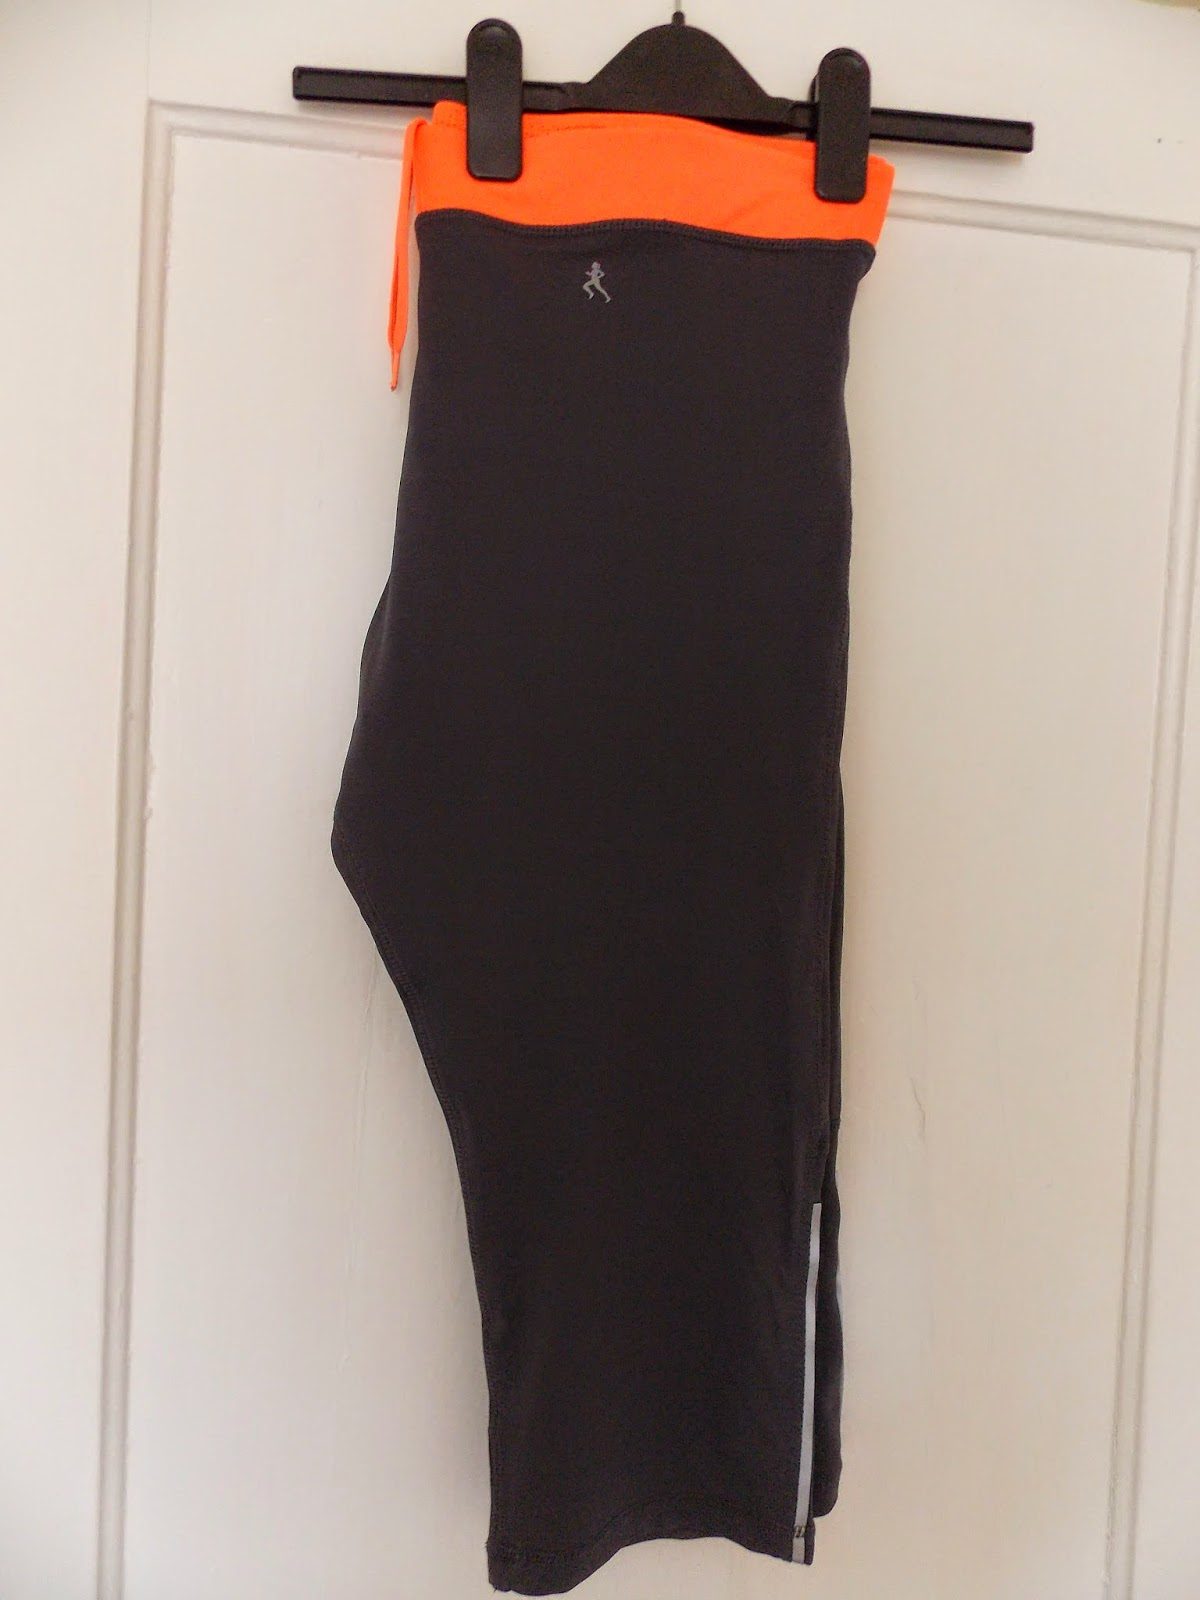 Primark Cropped Workout Trousers